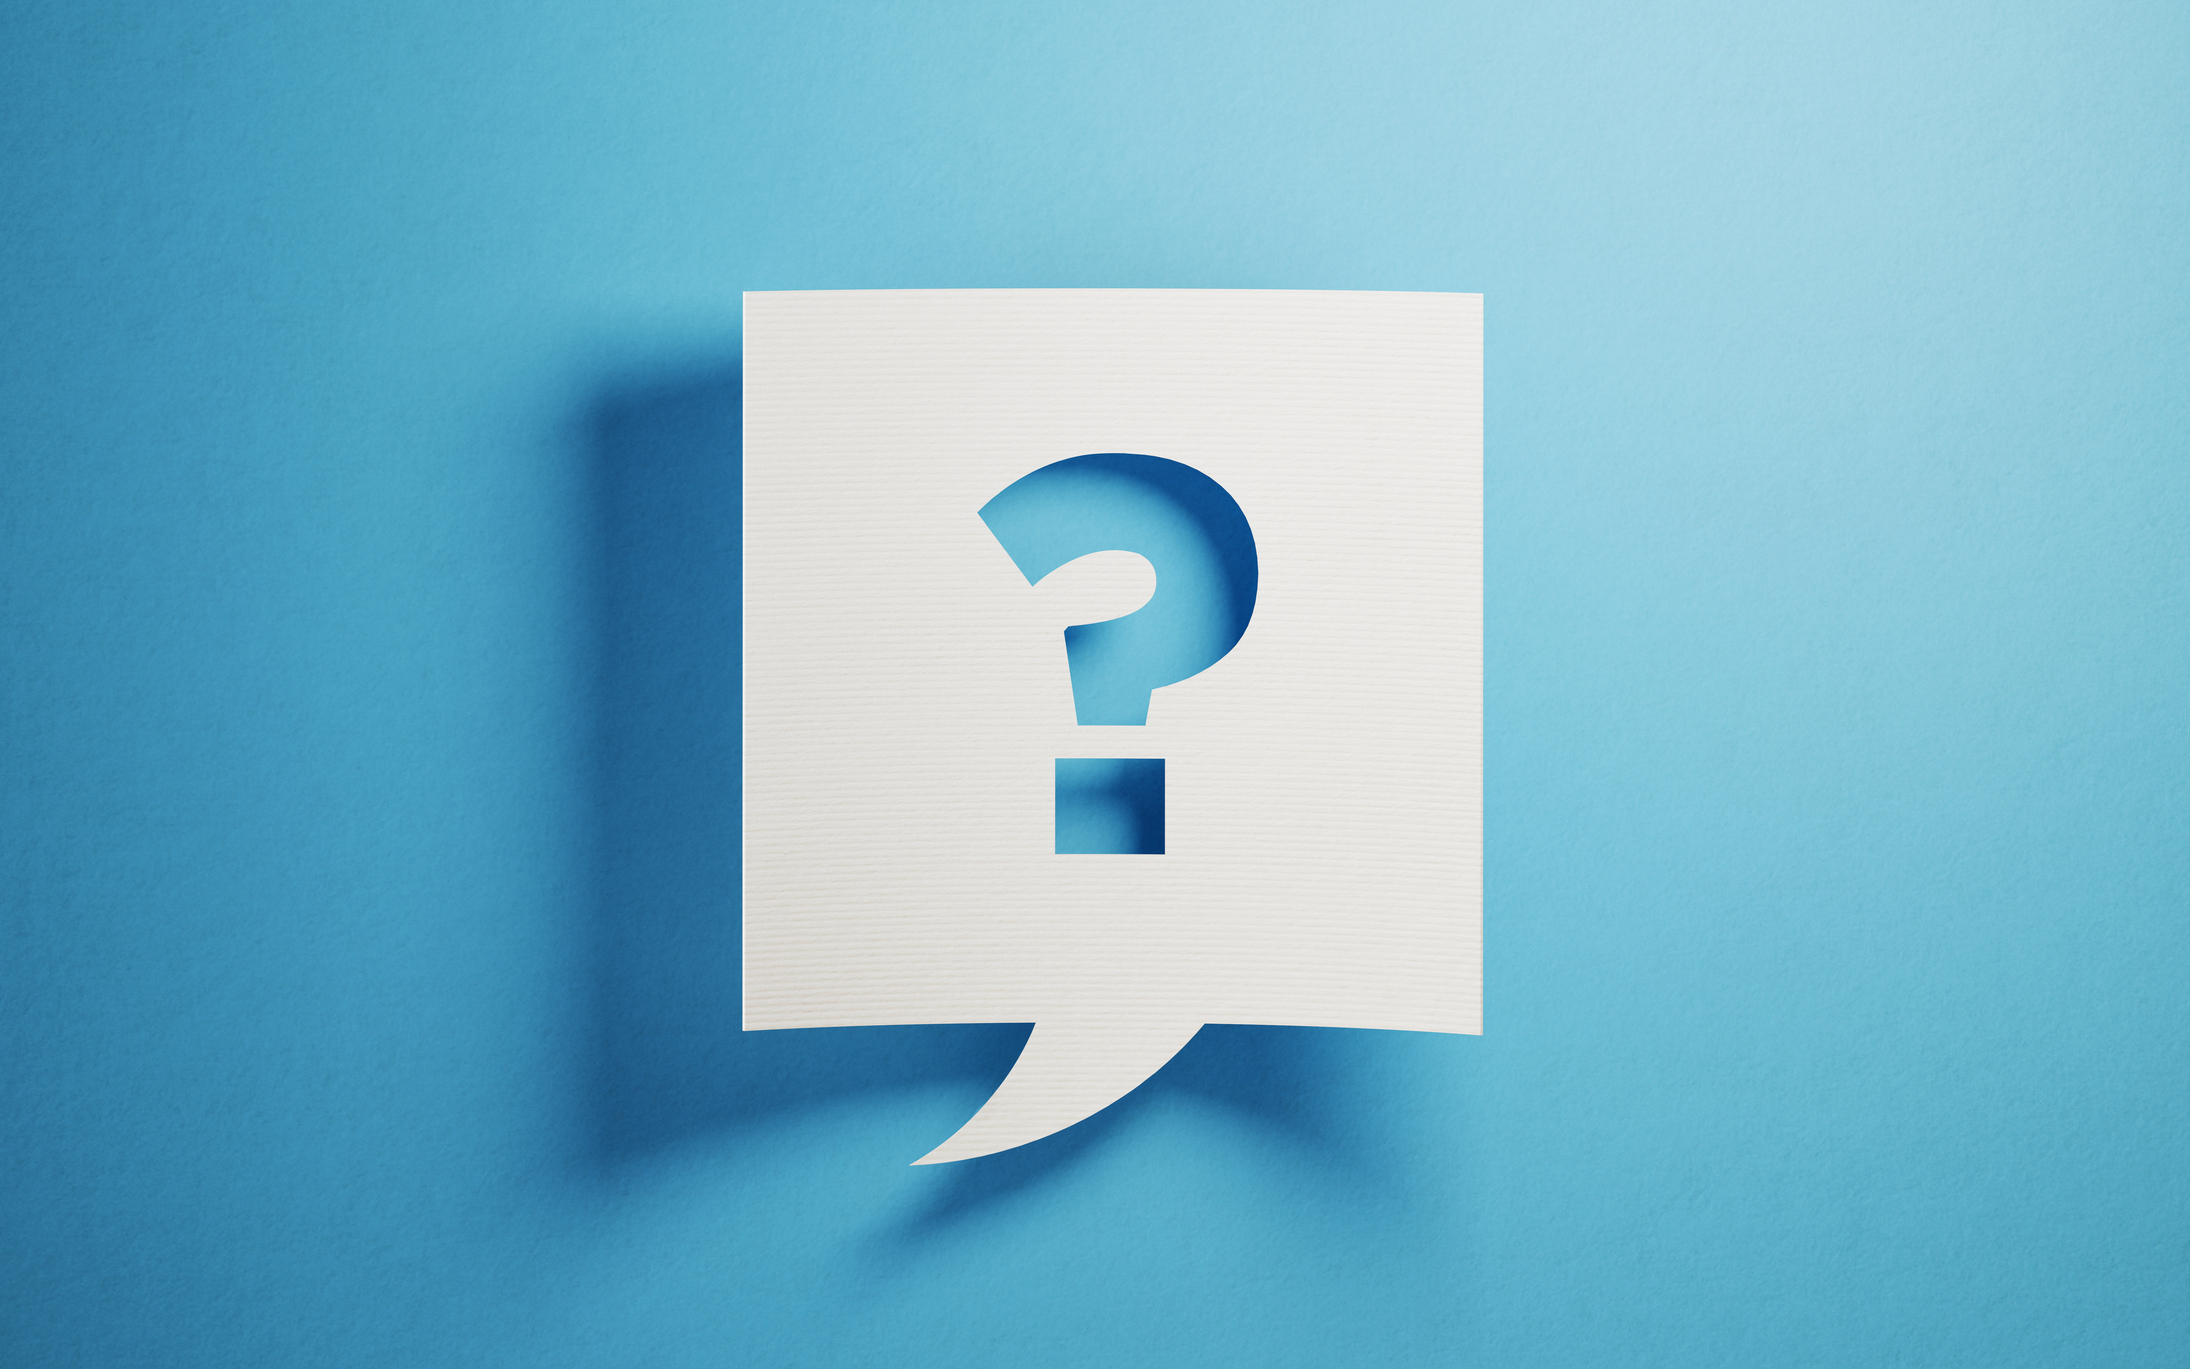 Chat bubble with question mark on blue background.